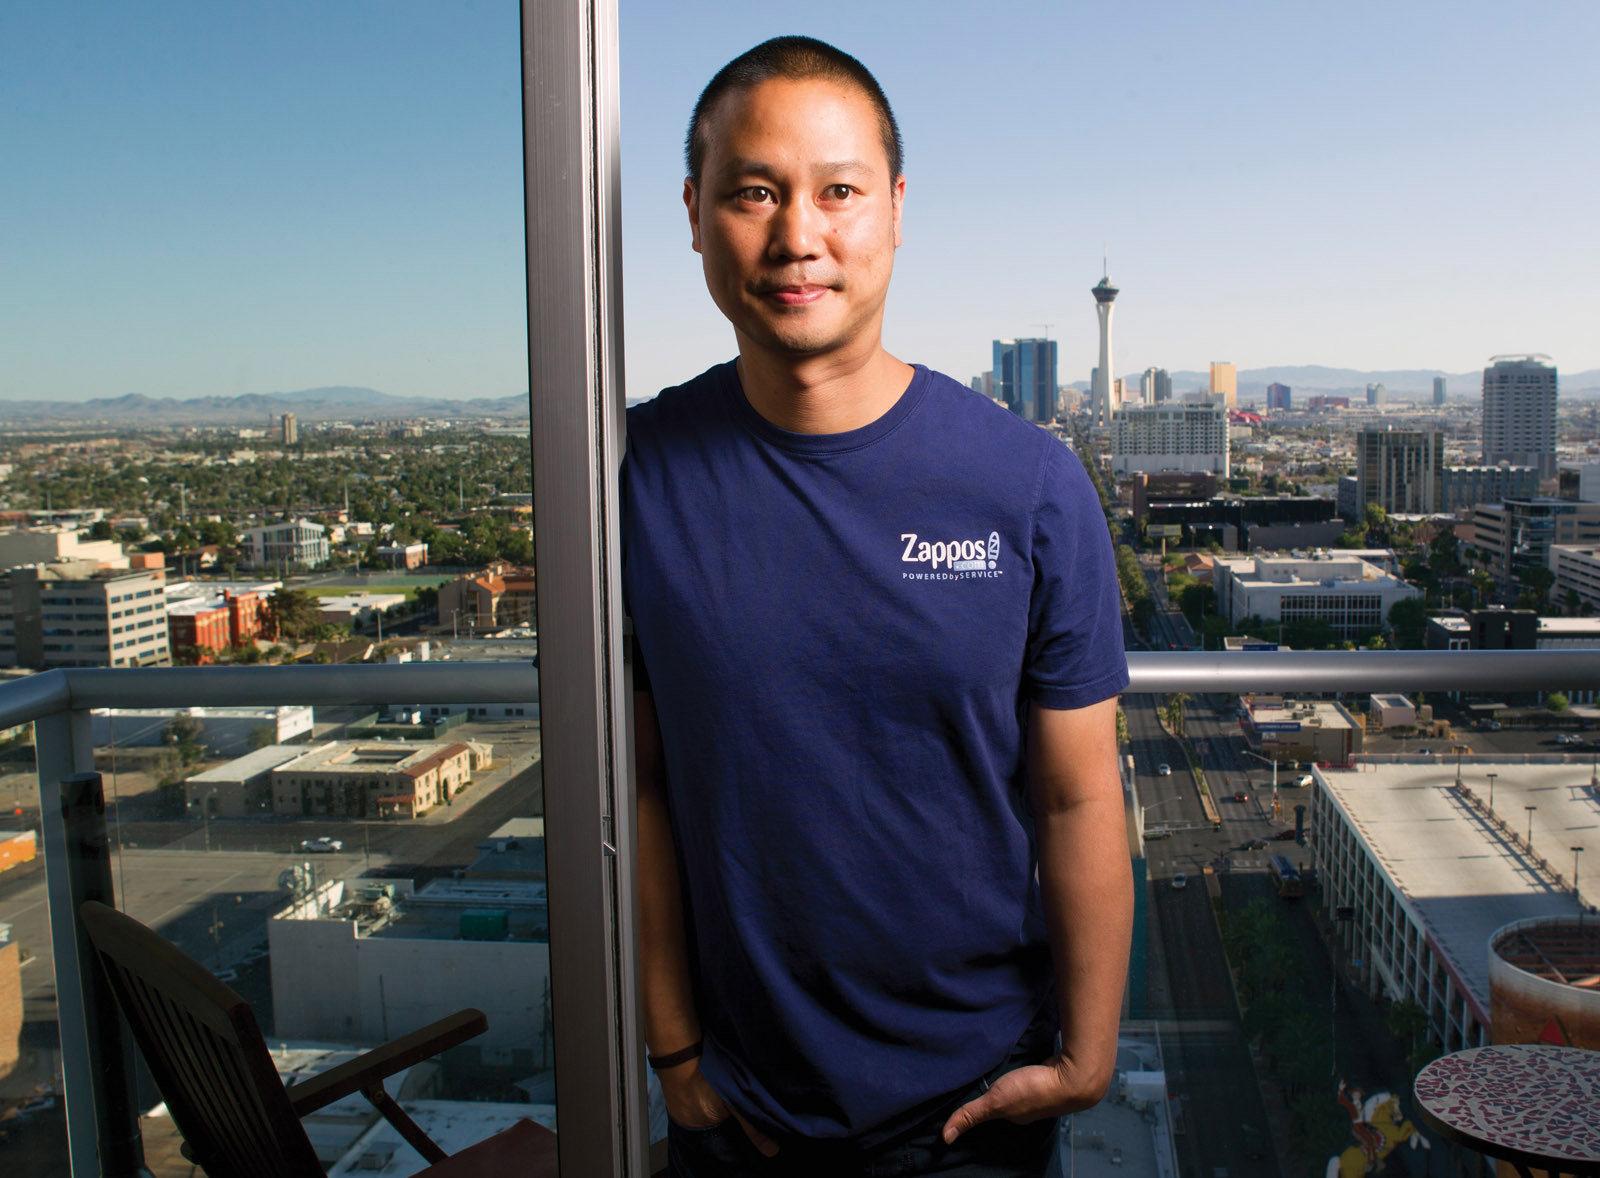 ▲▼Zappos執行長謝家華(Tony Hsieh)。(圖/翻攝自Facebook/Tony Hsieh)